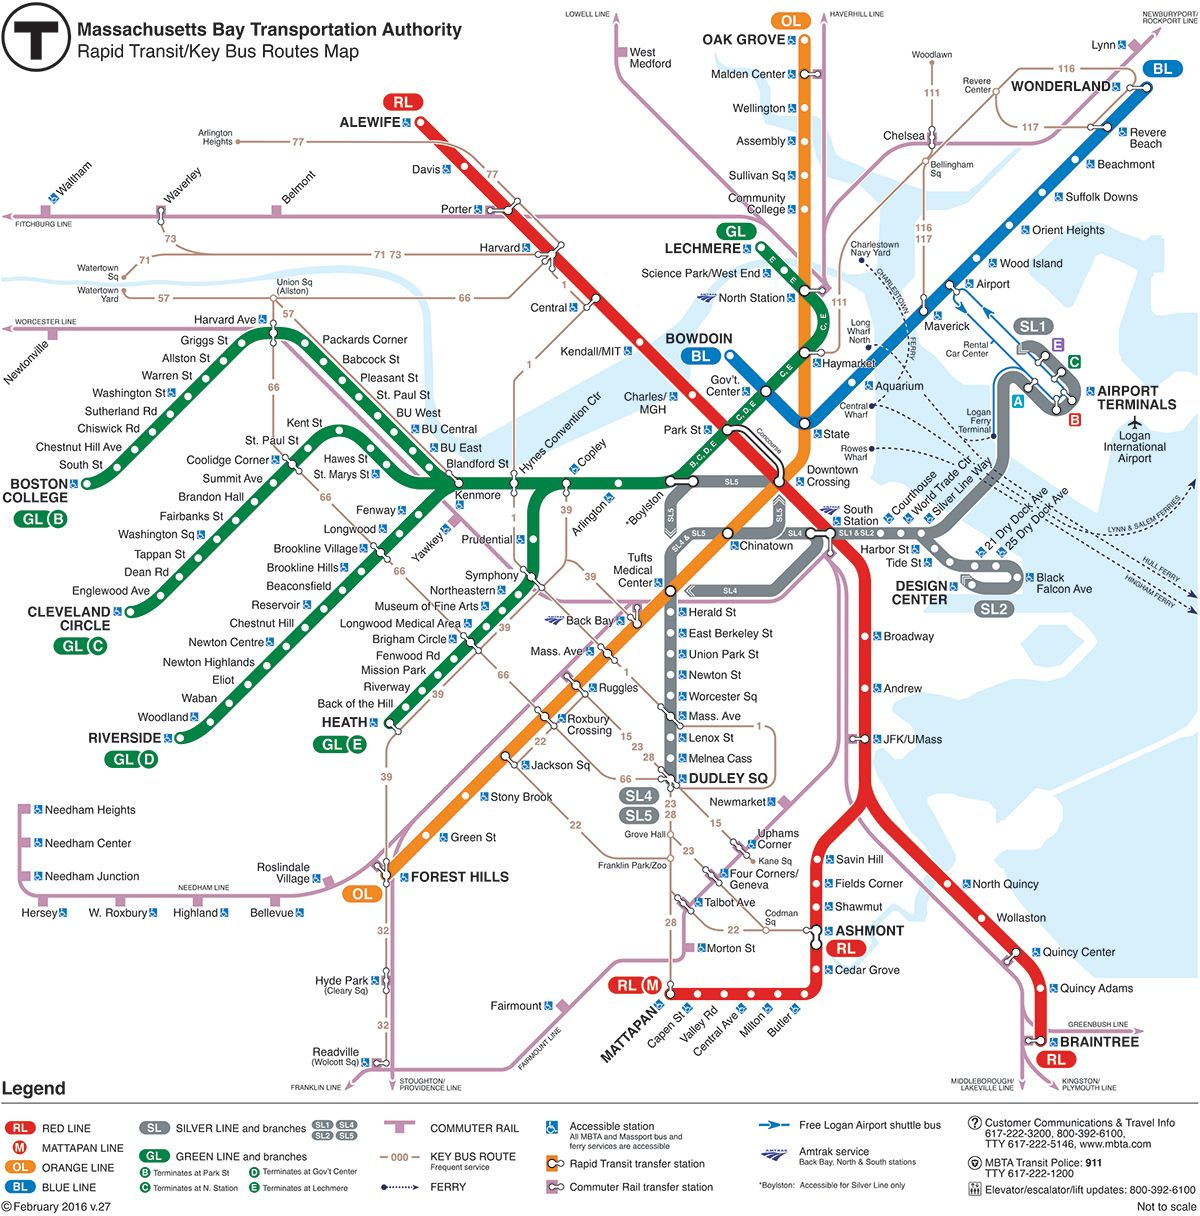 mbta map of boston Mbta Subway The T Maps Schedules And Fare Information For mbta map of boston